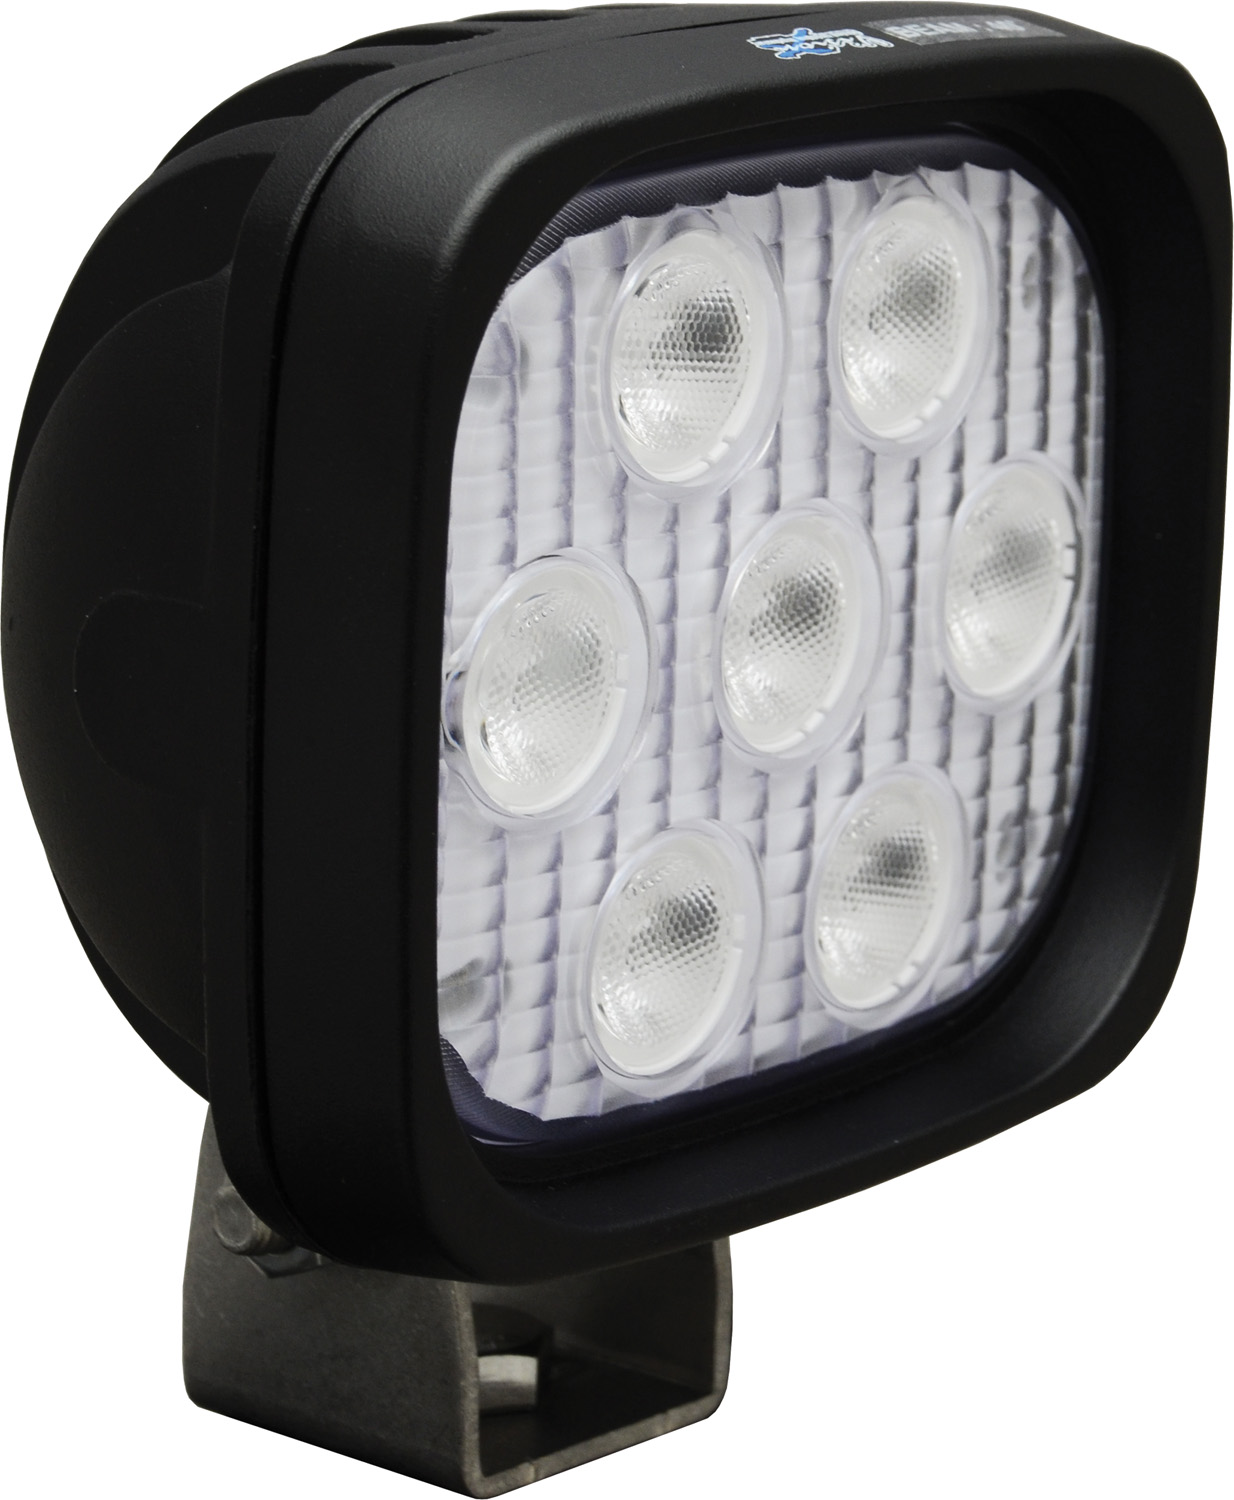 "4"" SQUARE UTILITY MARKET BLACK 7 3W AMBER LED'S 40? WIDE"